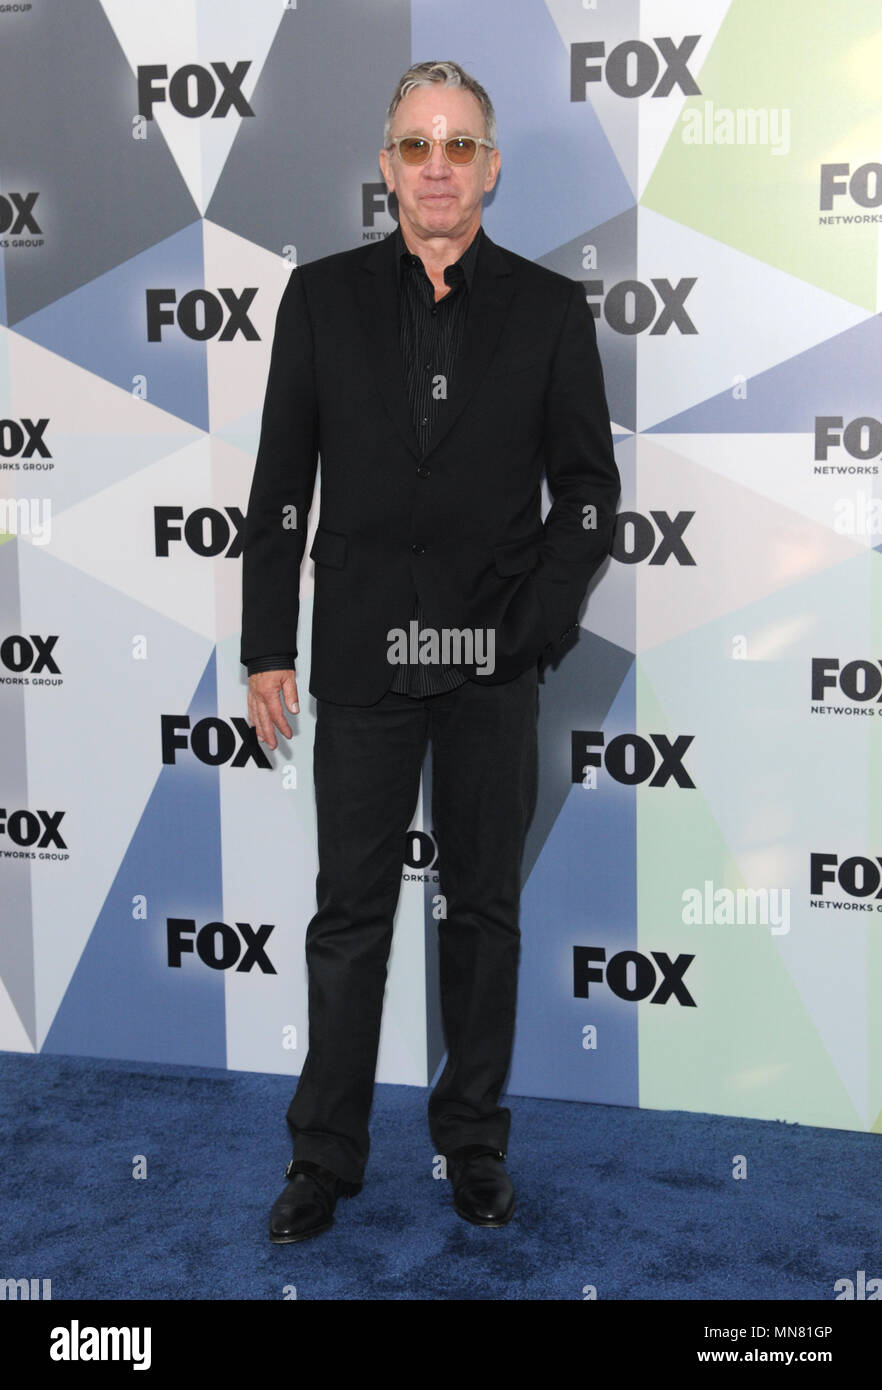 NEW YORK, NY - MAY 14: Tim Allen at the 2018 Fox Network Upfront at Wollman Rink, Central Park on May 14, 2018 in New York City. Credit: John Palmer/MediaPunch - Stock Image